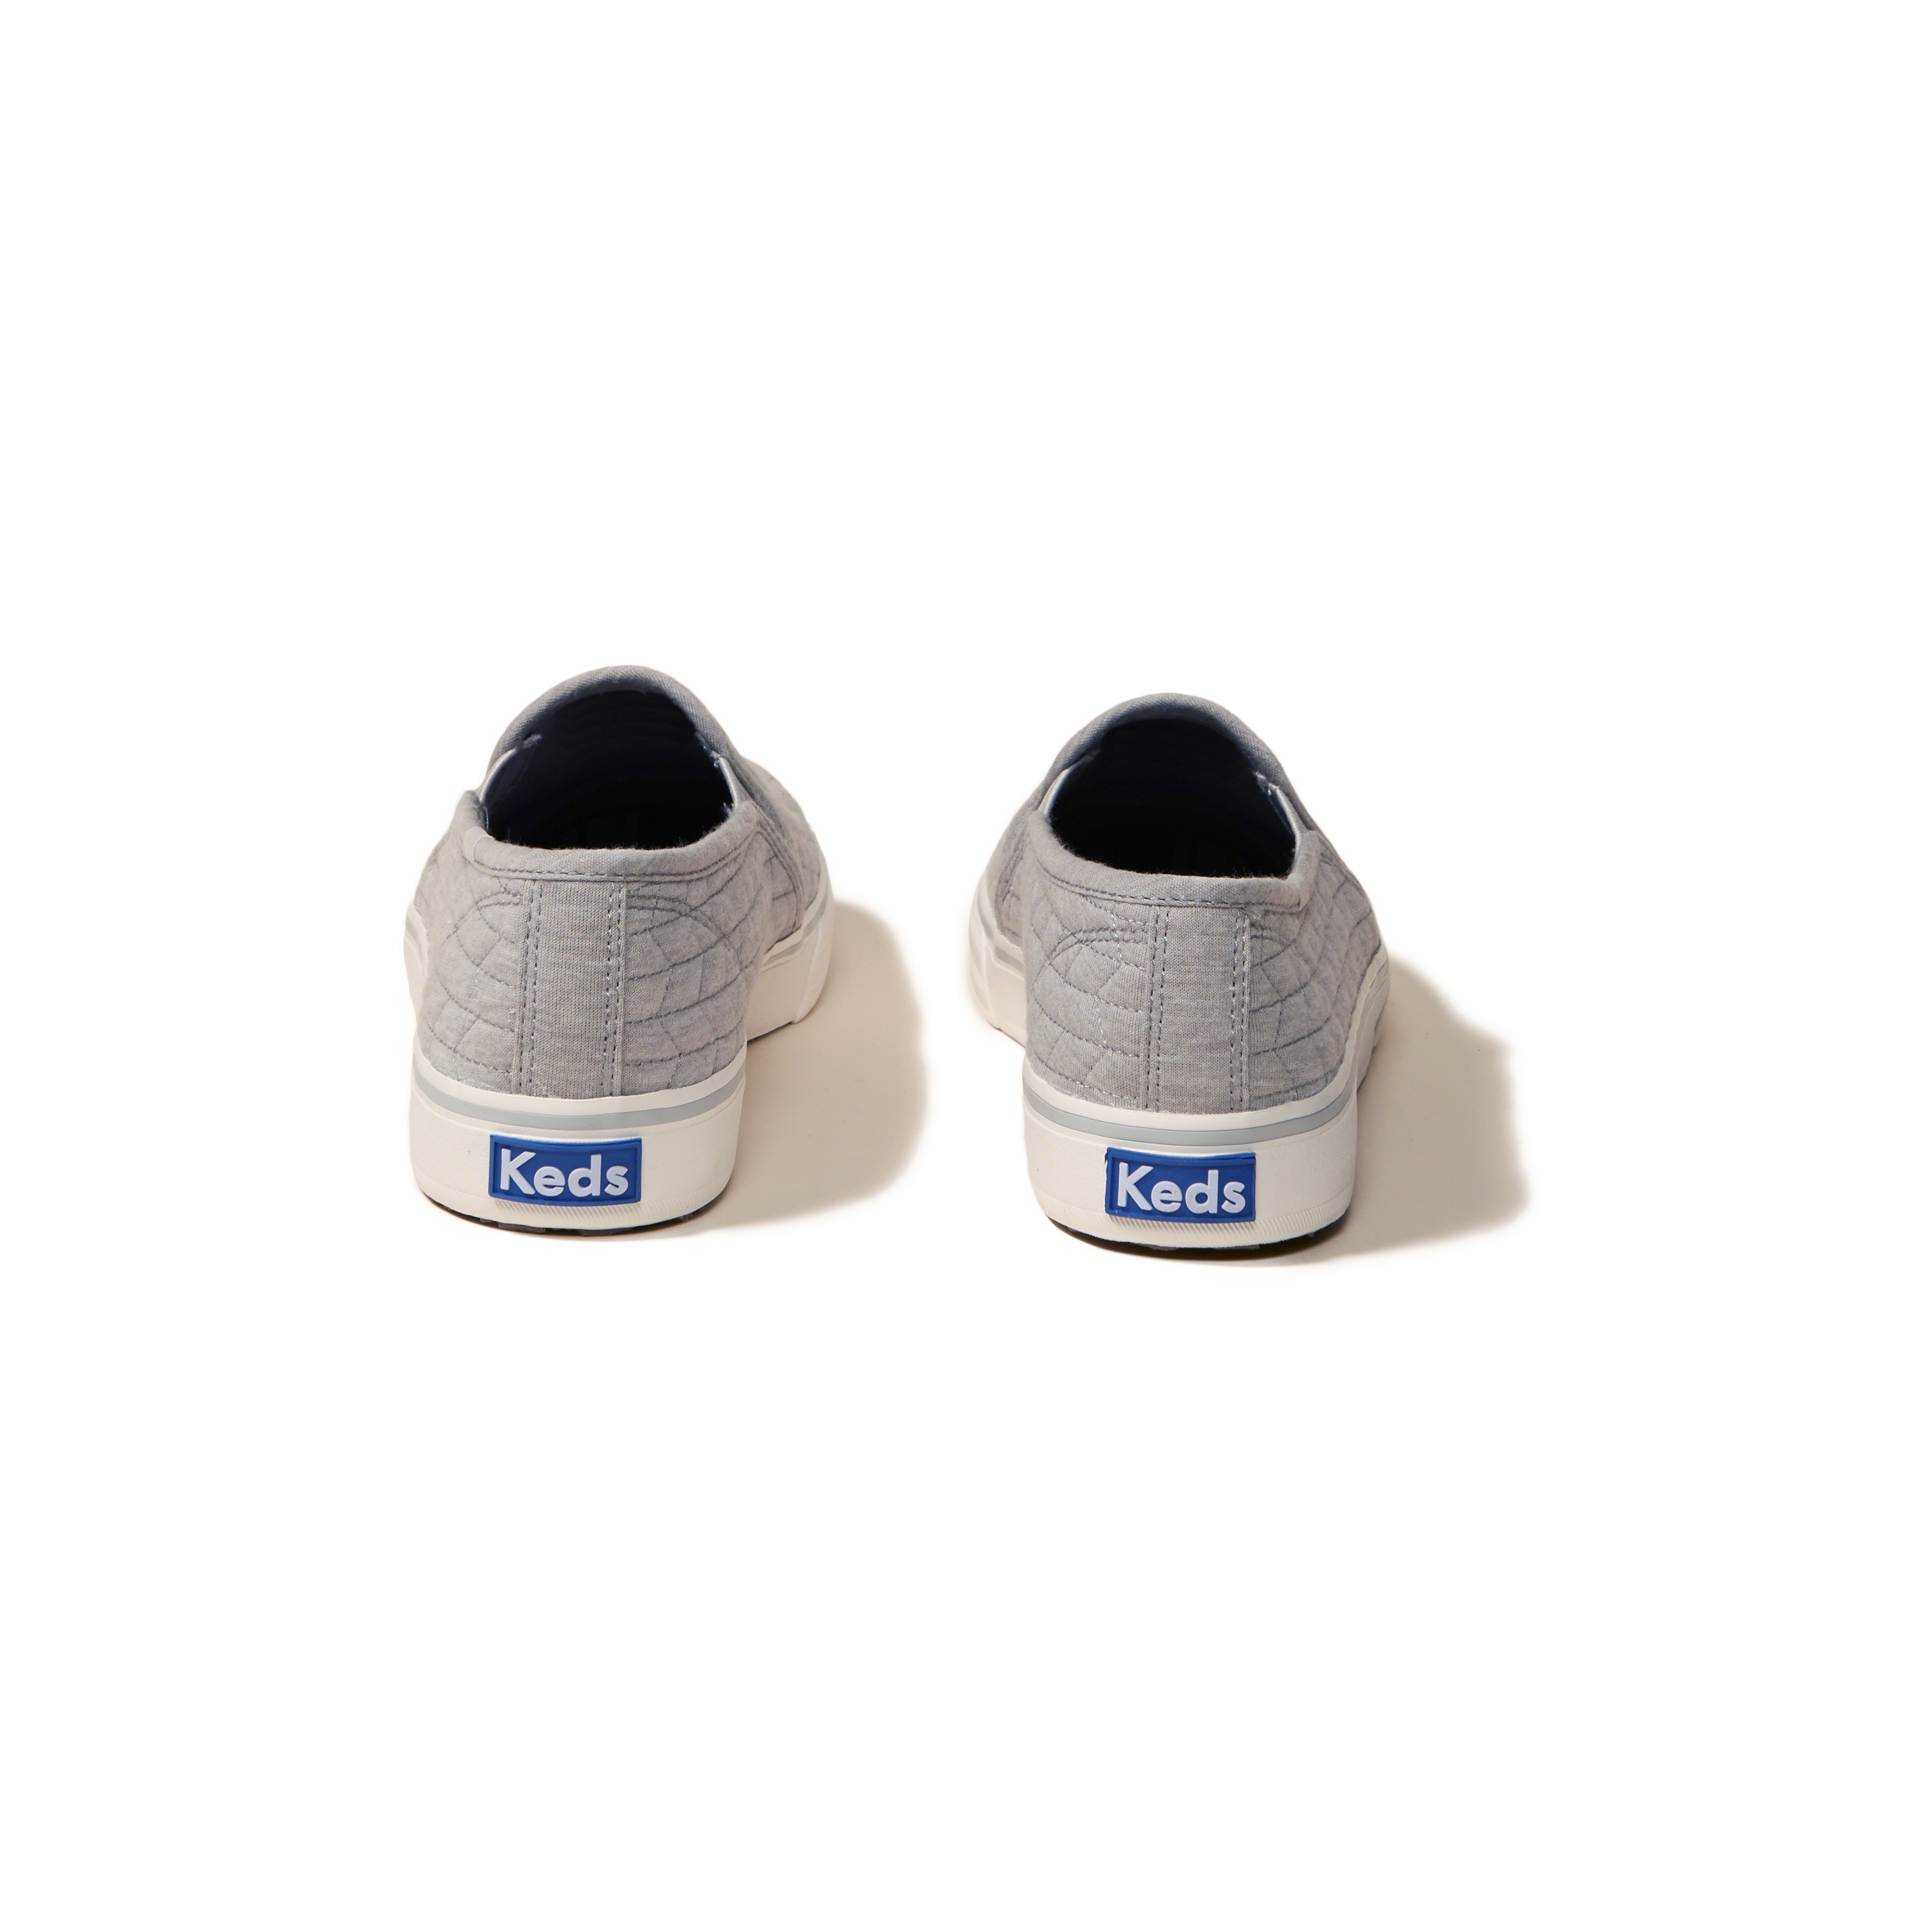 Hollister Keds Double Decker Quilted Jersey Sneakers In